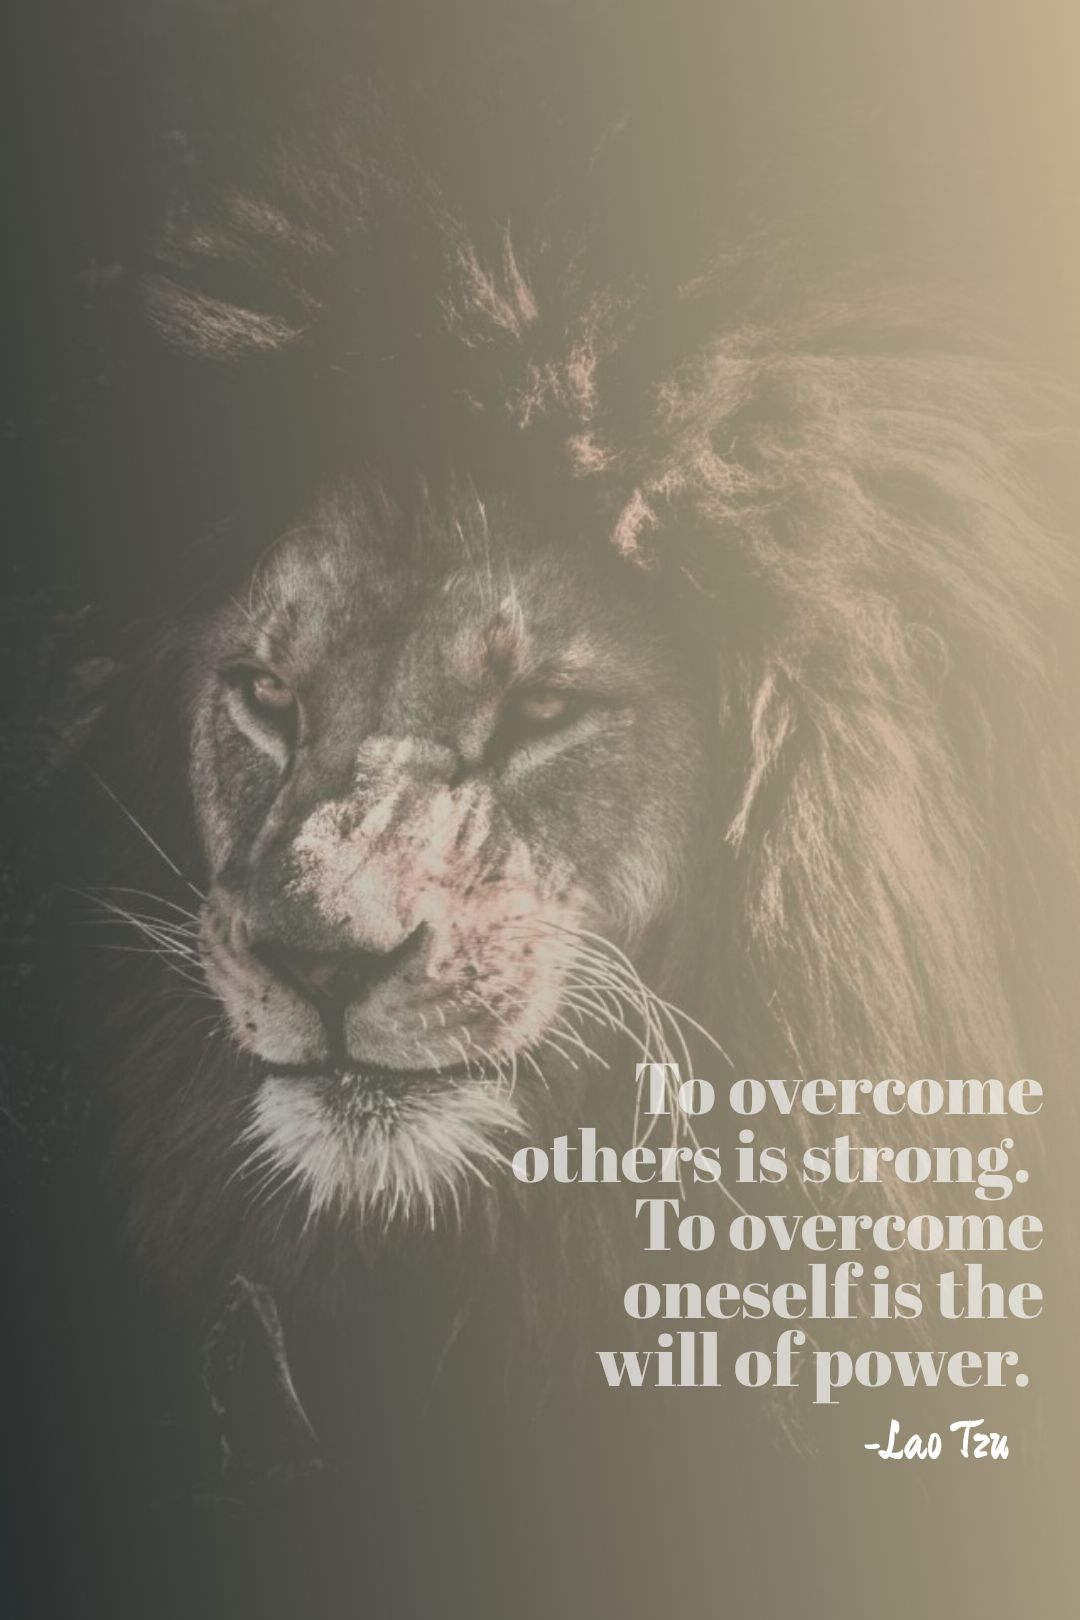 To overcome others is strong. To overcome oneself is the will of power. -Lao Tzu (Tao Te Ching). [1080×1620]